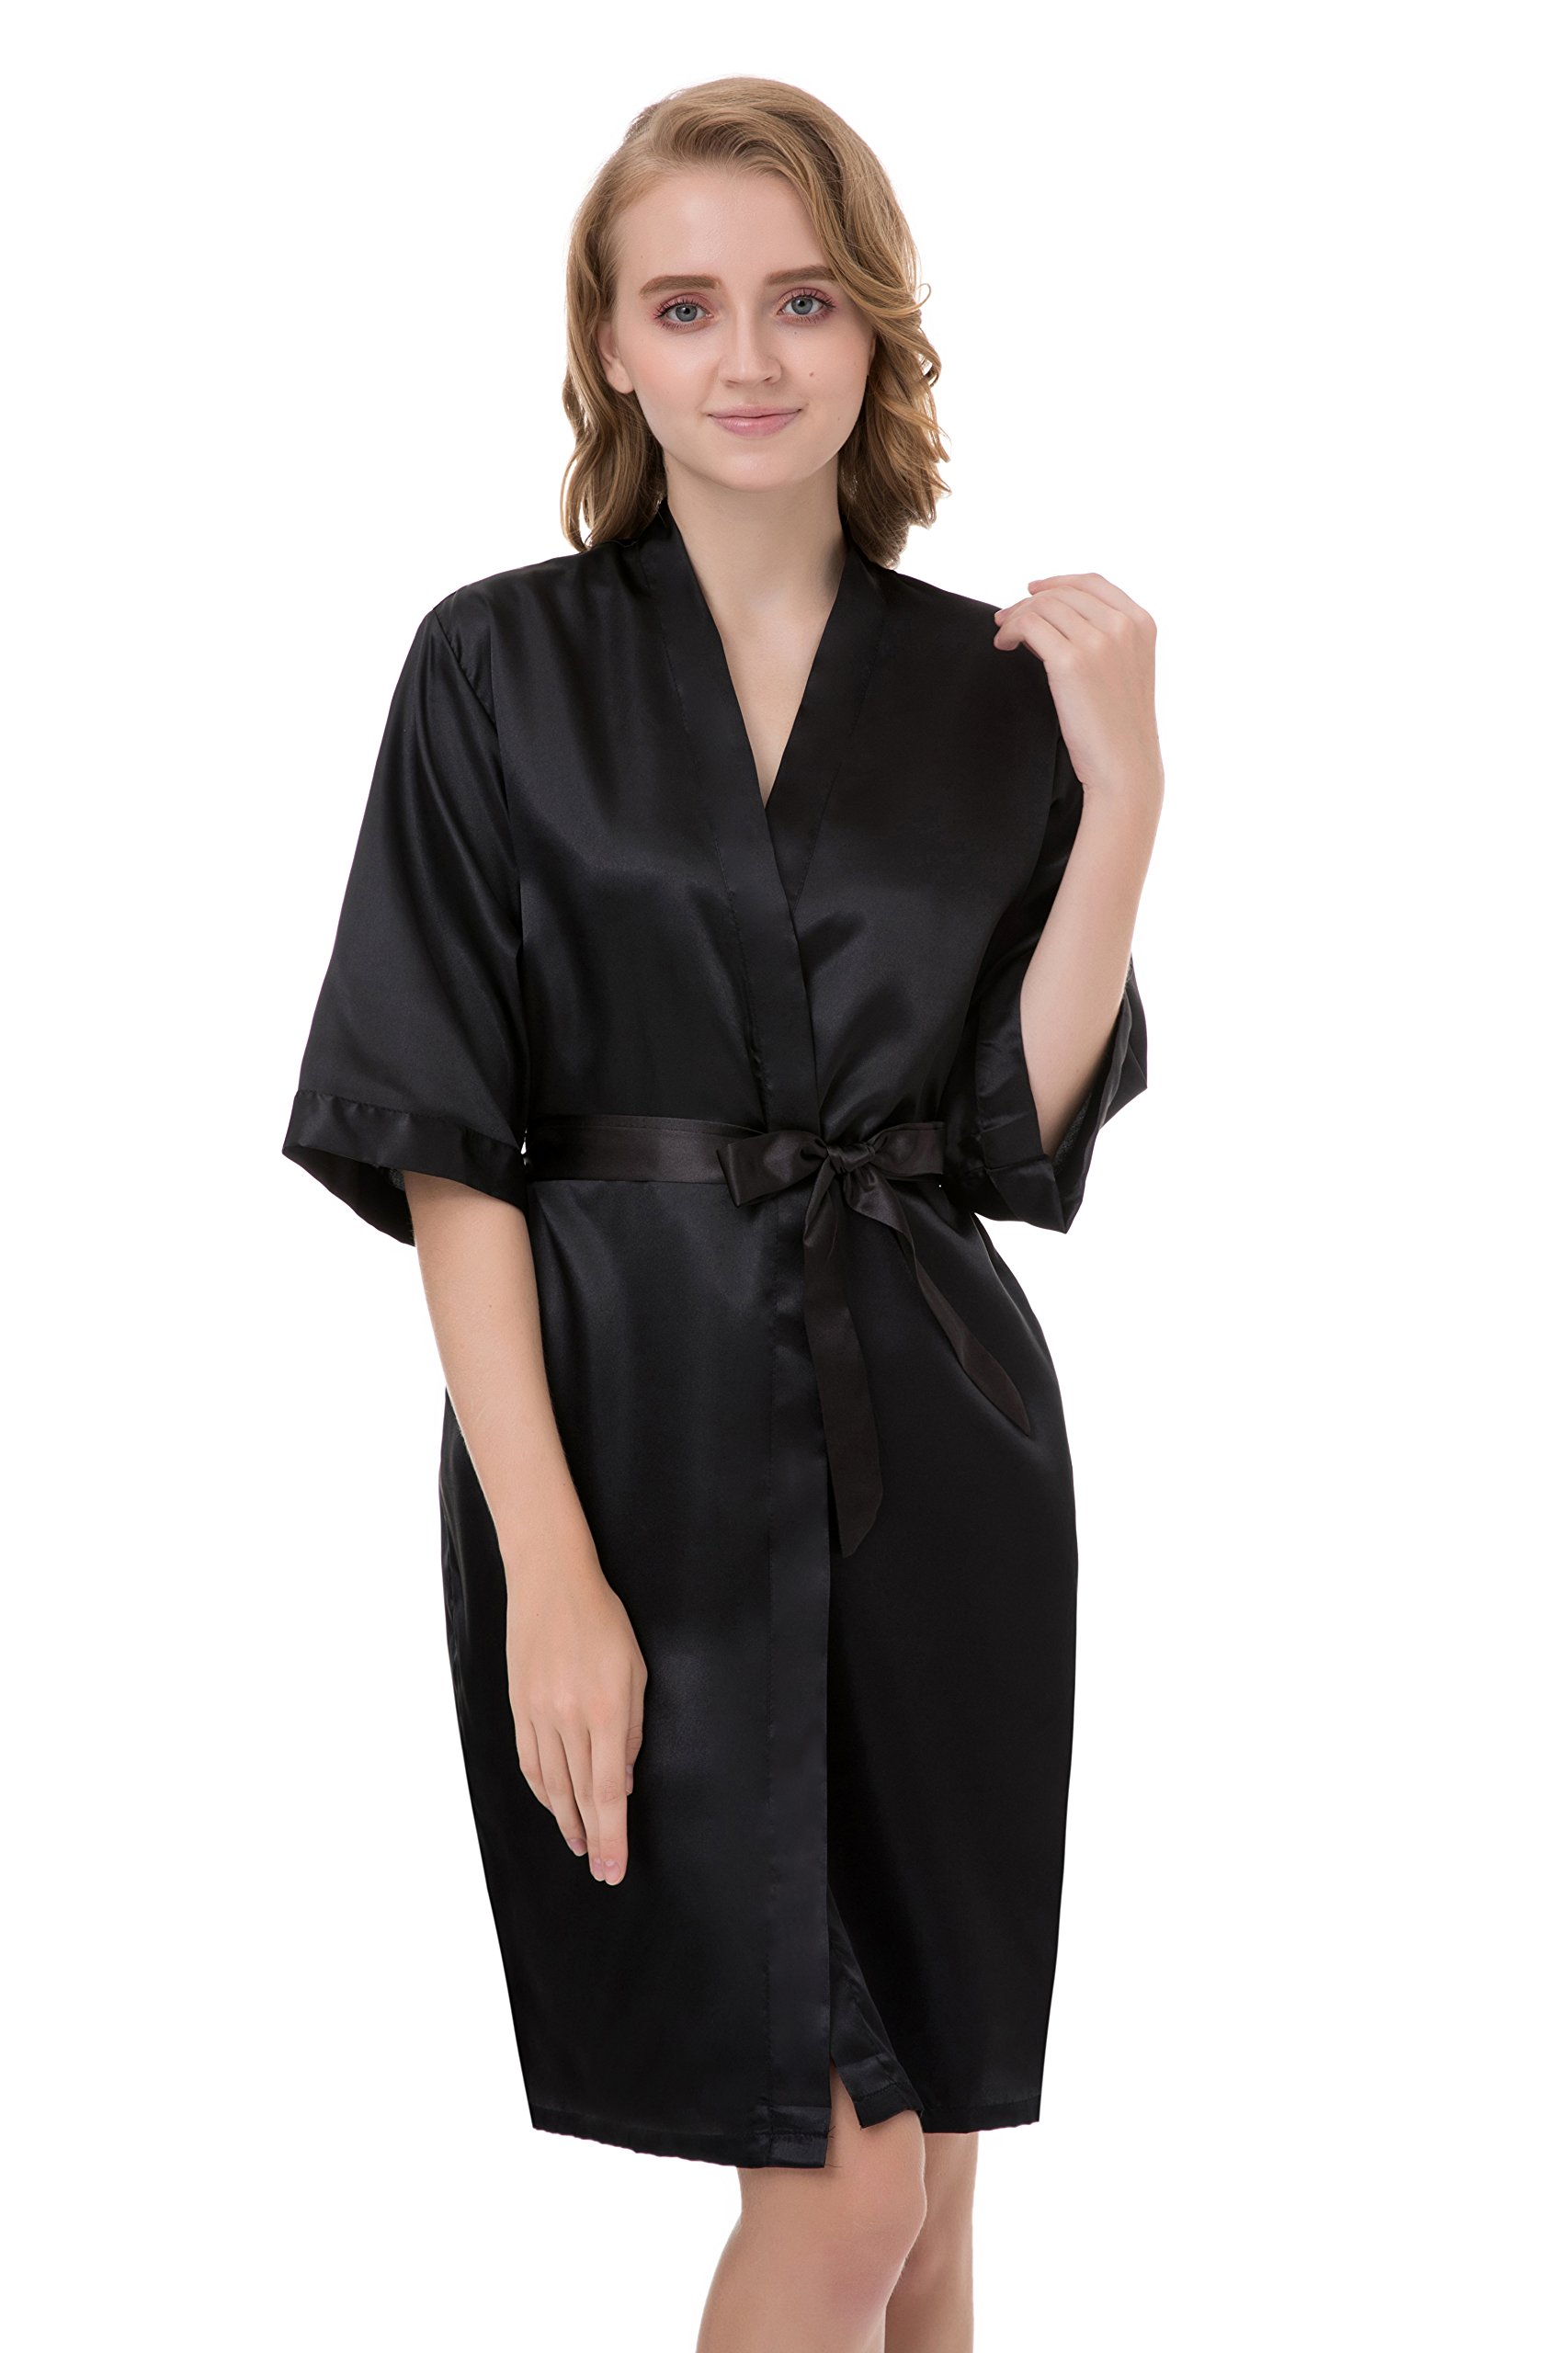 gusuqing Women s Pure Color Short Kimono Robe Sleeve Bridesmaid Robe Black  37 XL dea5657c6